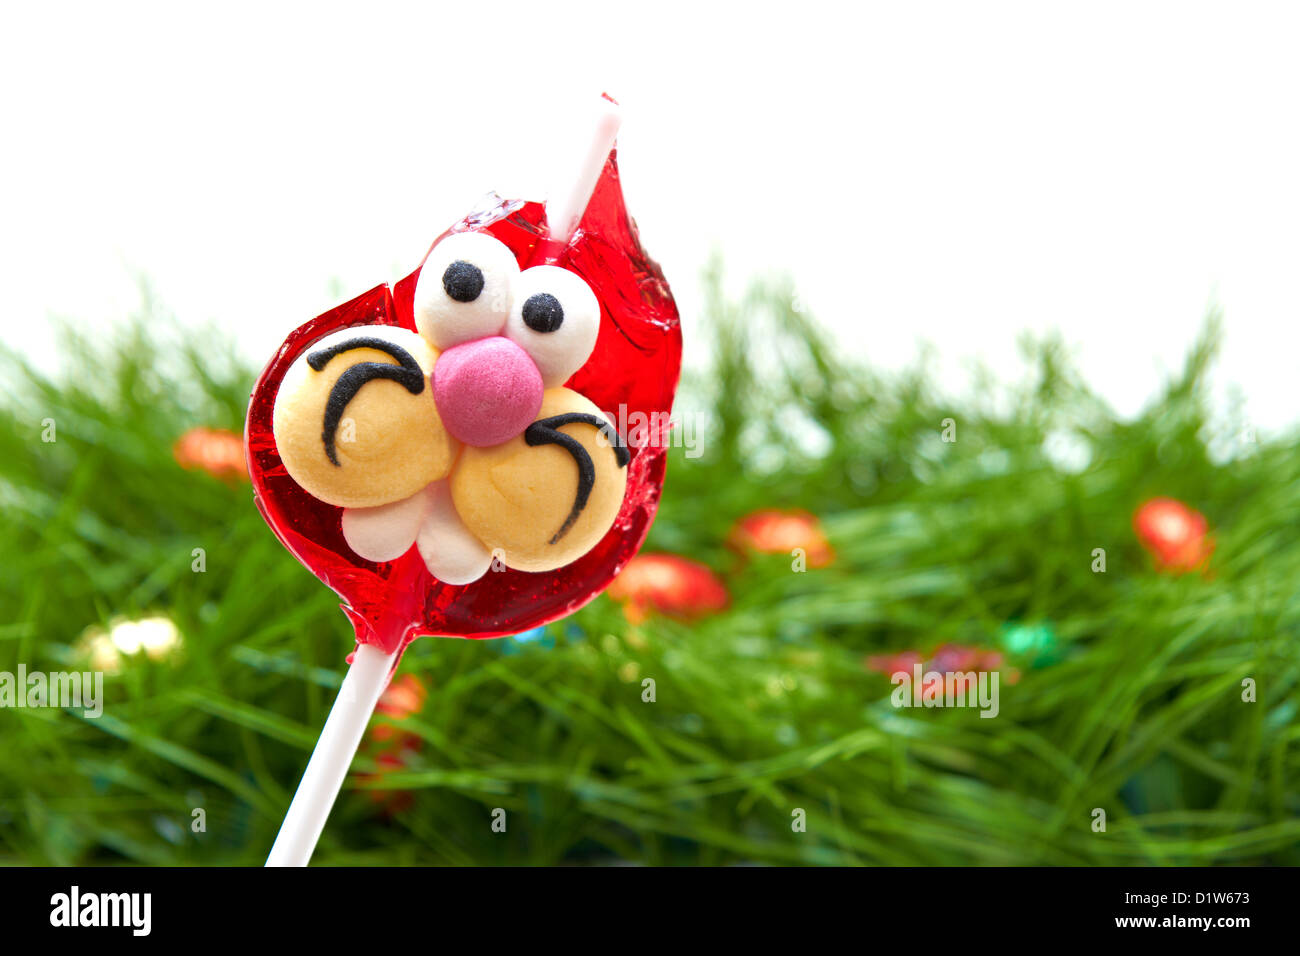 Easter Lollipop Bunny with broken ear - Stock Image